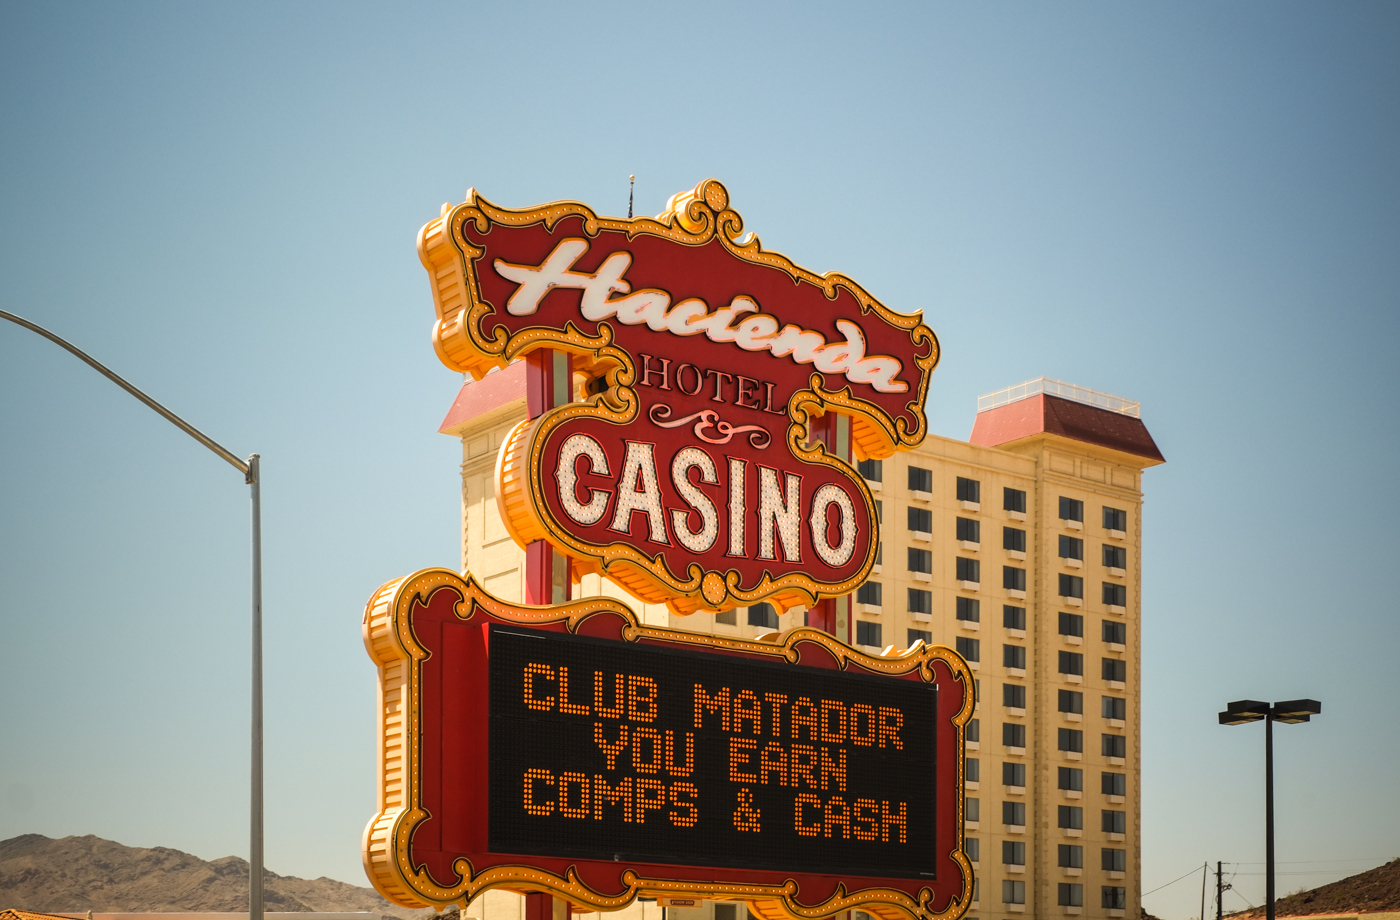 Hacienda Hotel and Casino